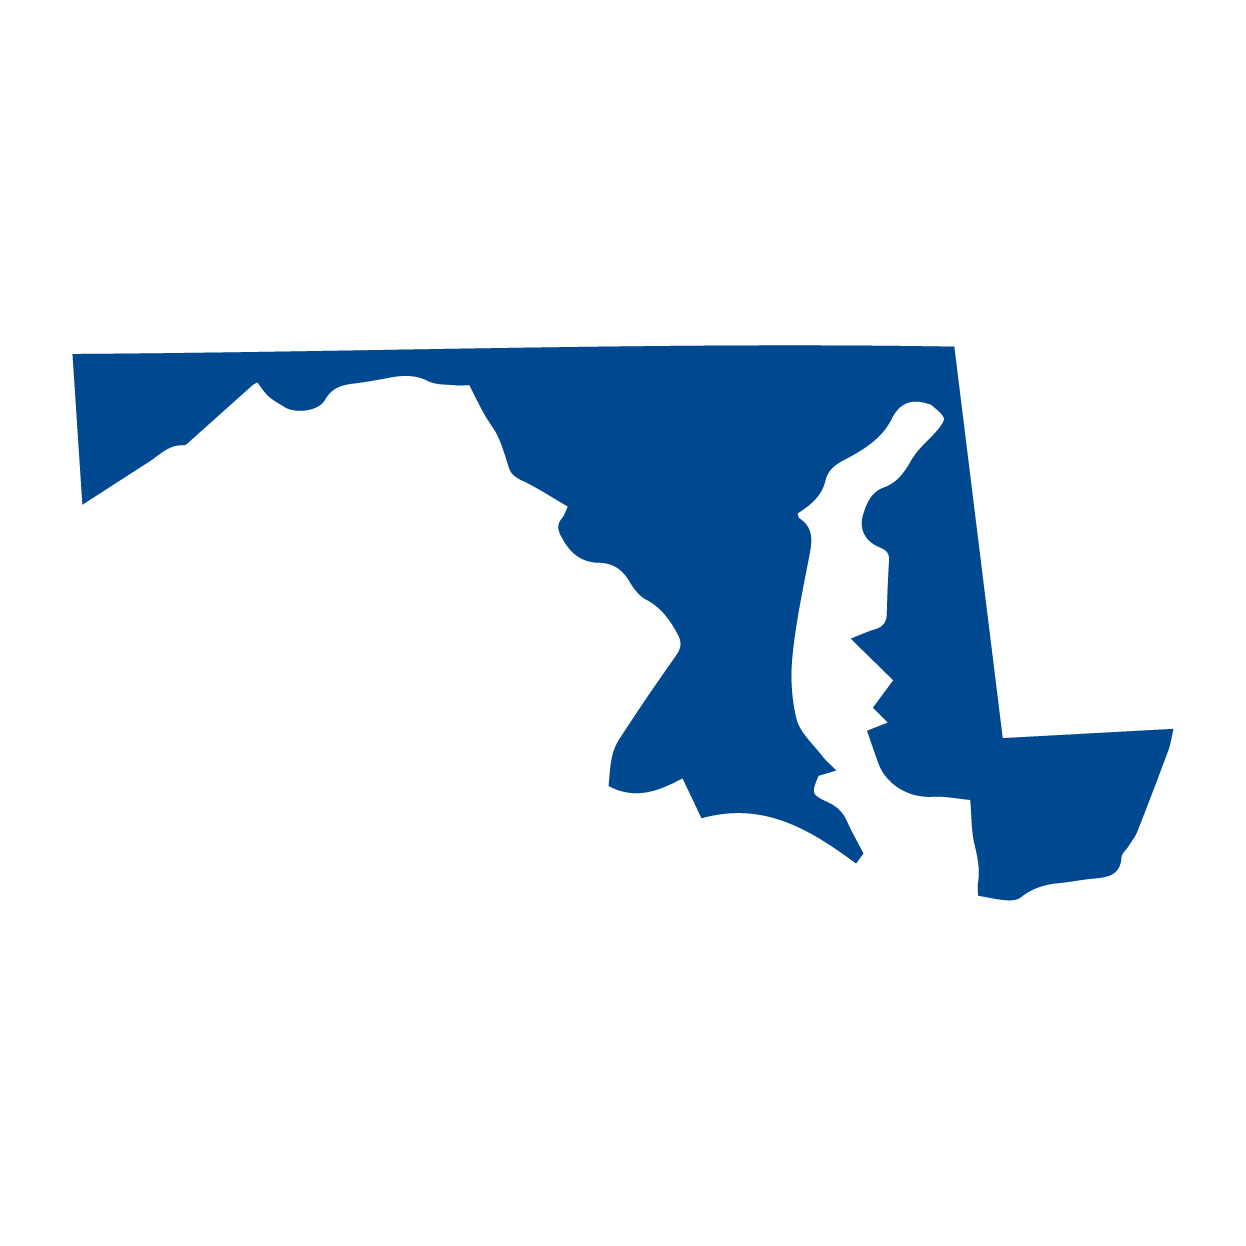 State Services Link - blue silhouette of Maryland